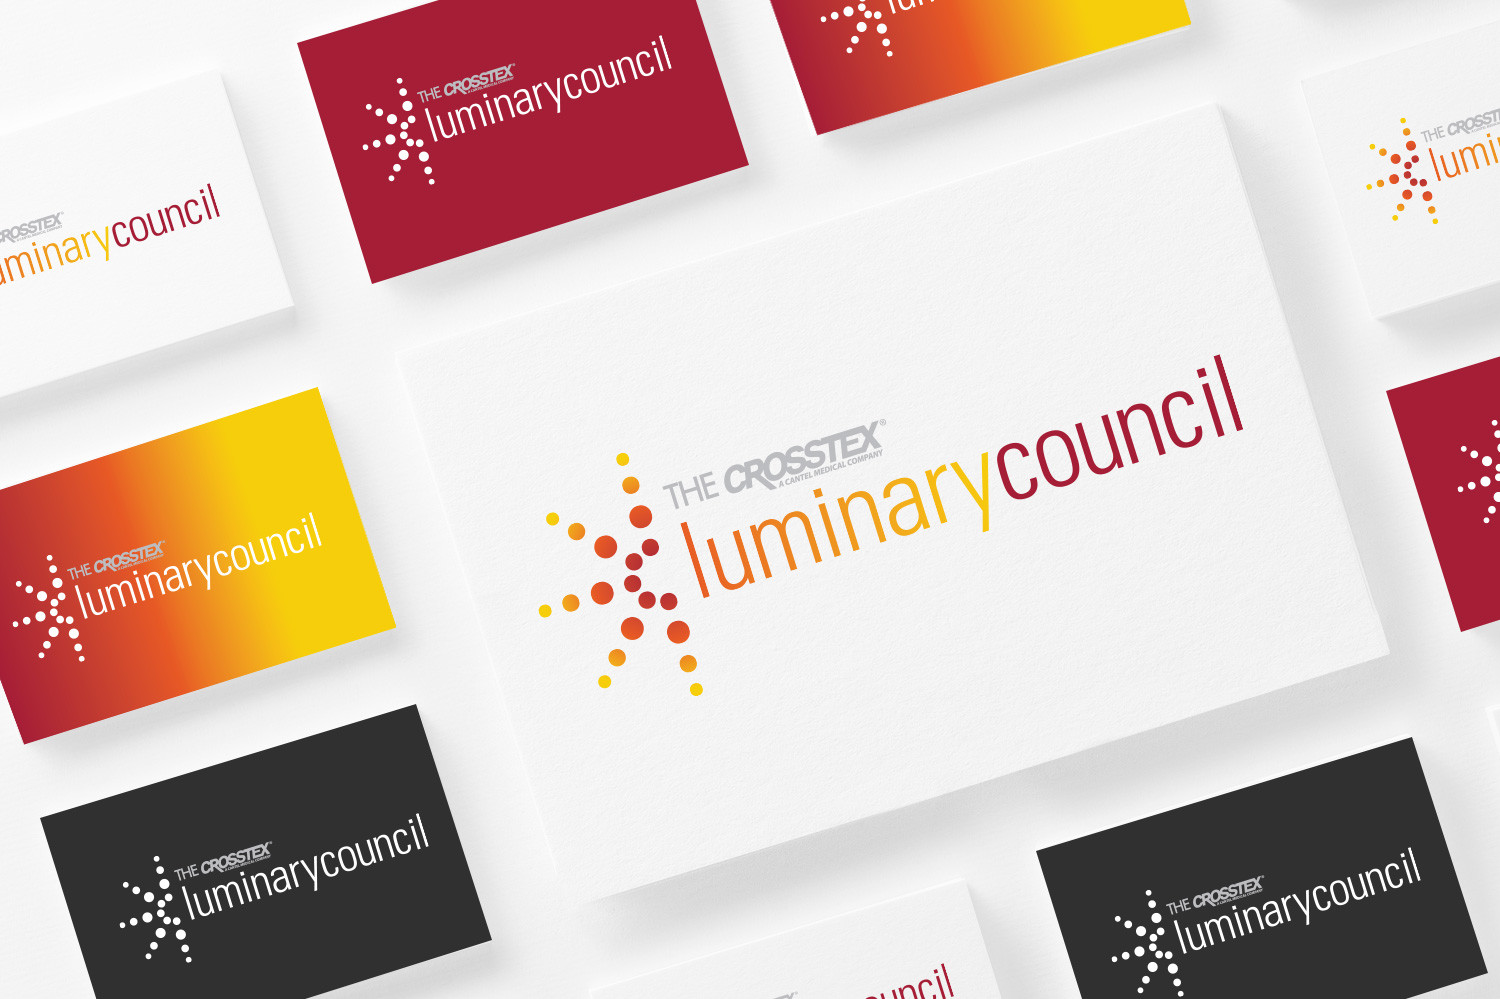 LuminaryCouncil_CorporateIdentity